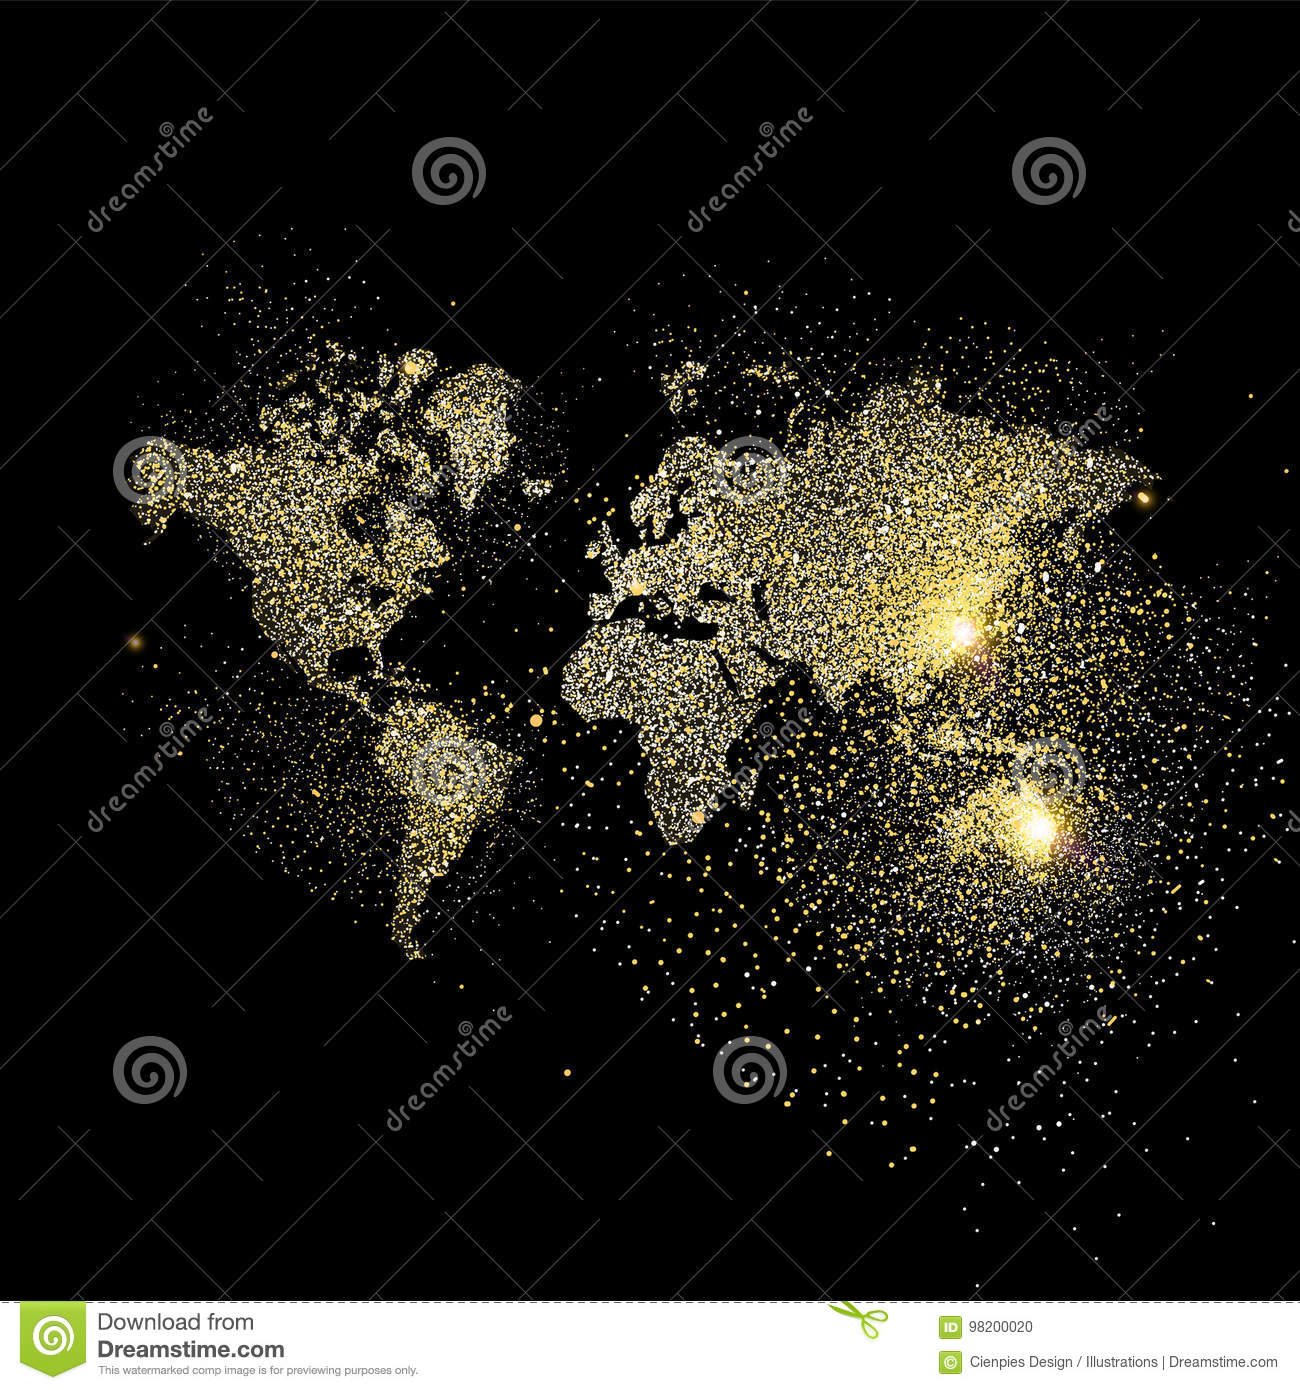 World map gold glitter art concept illustration stock vector download comp gumiabroncs Choice Image